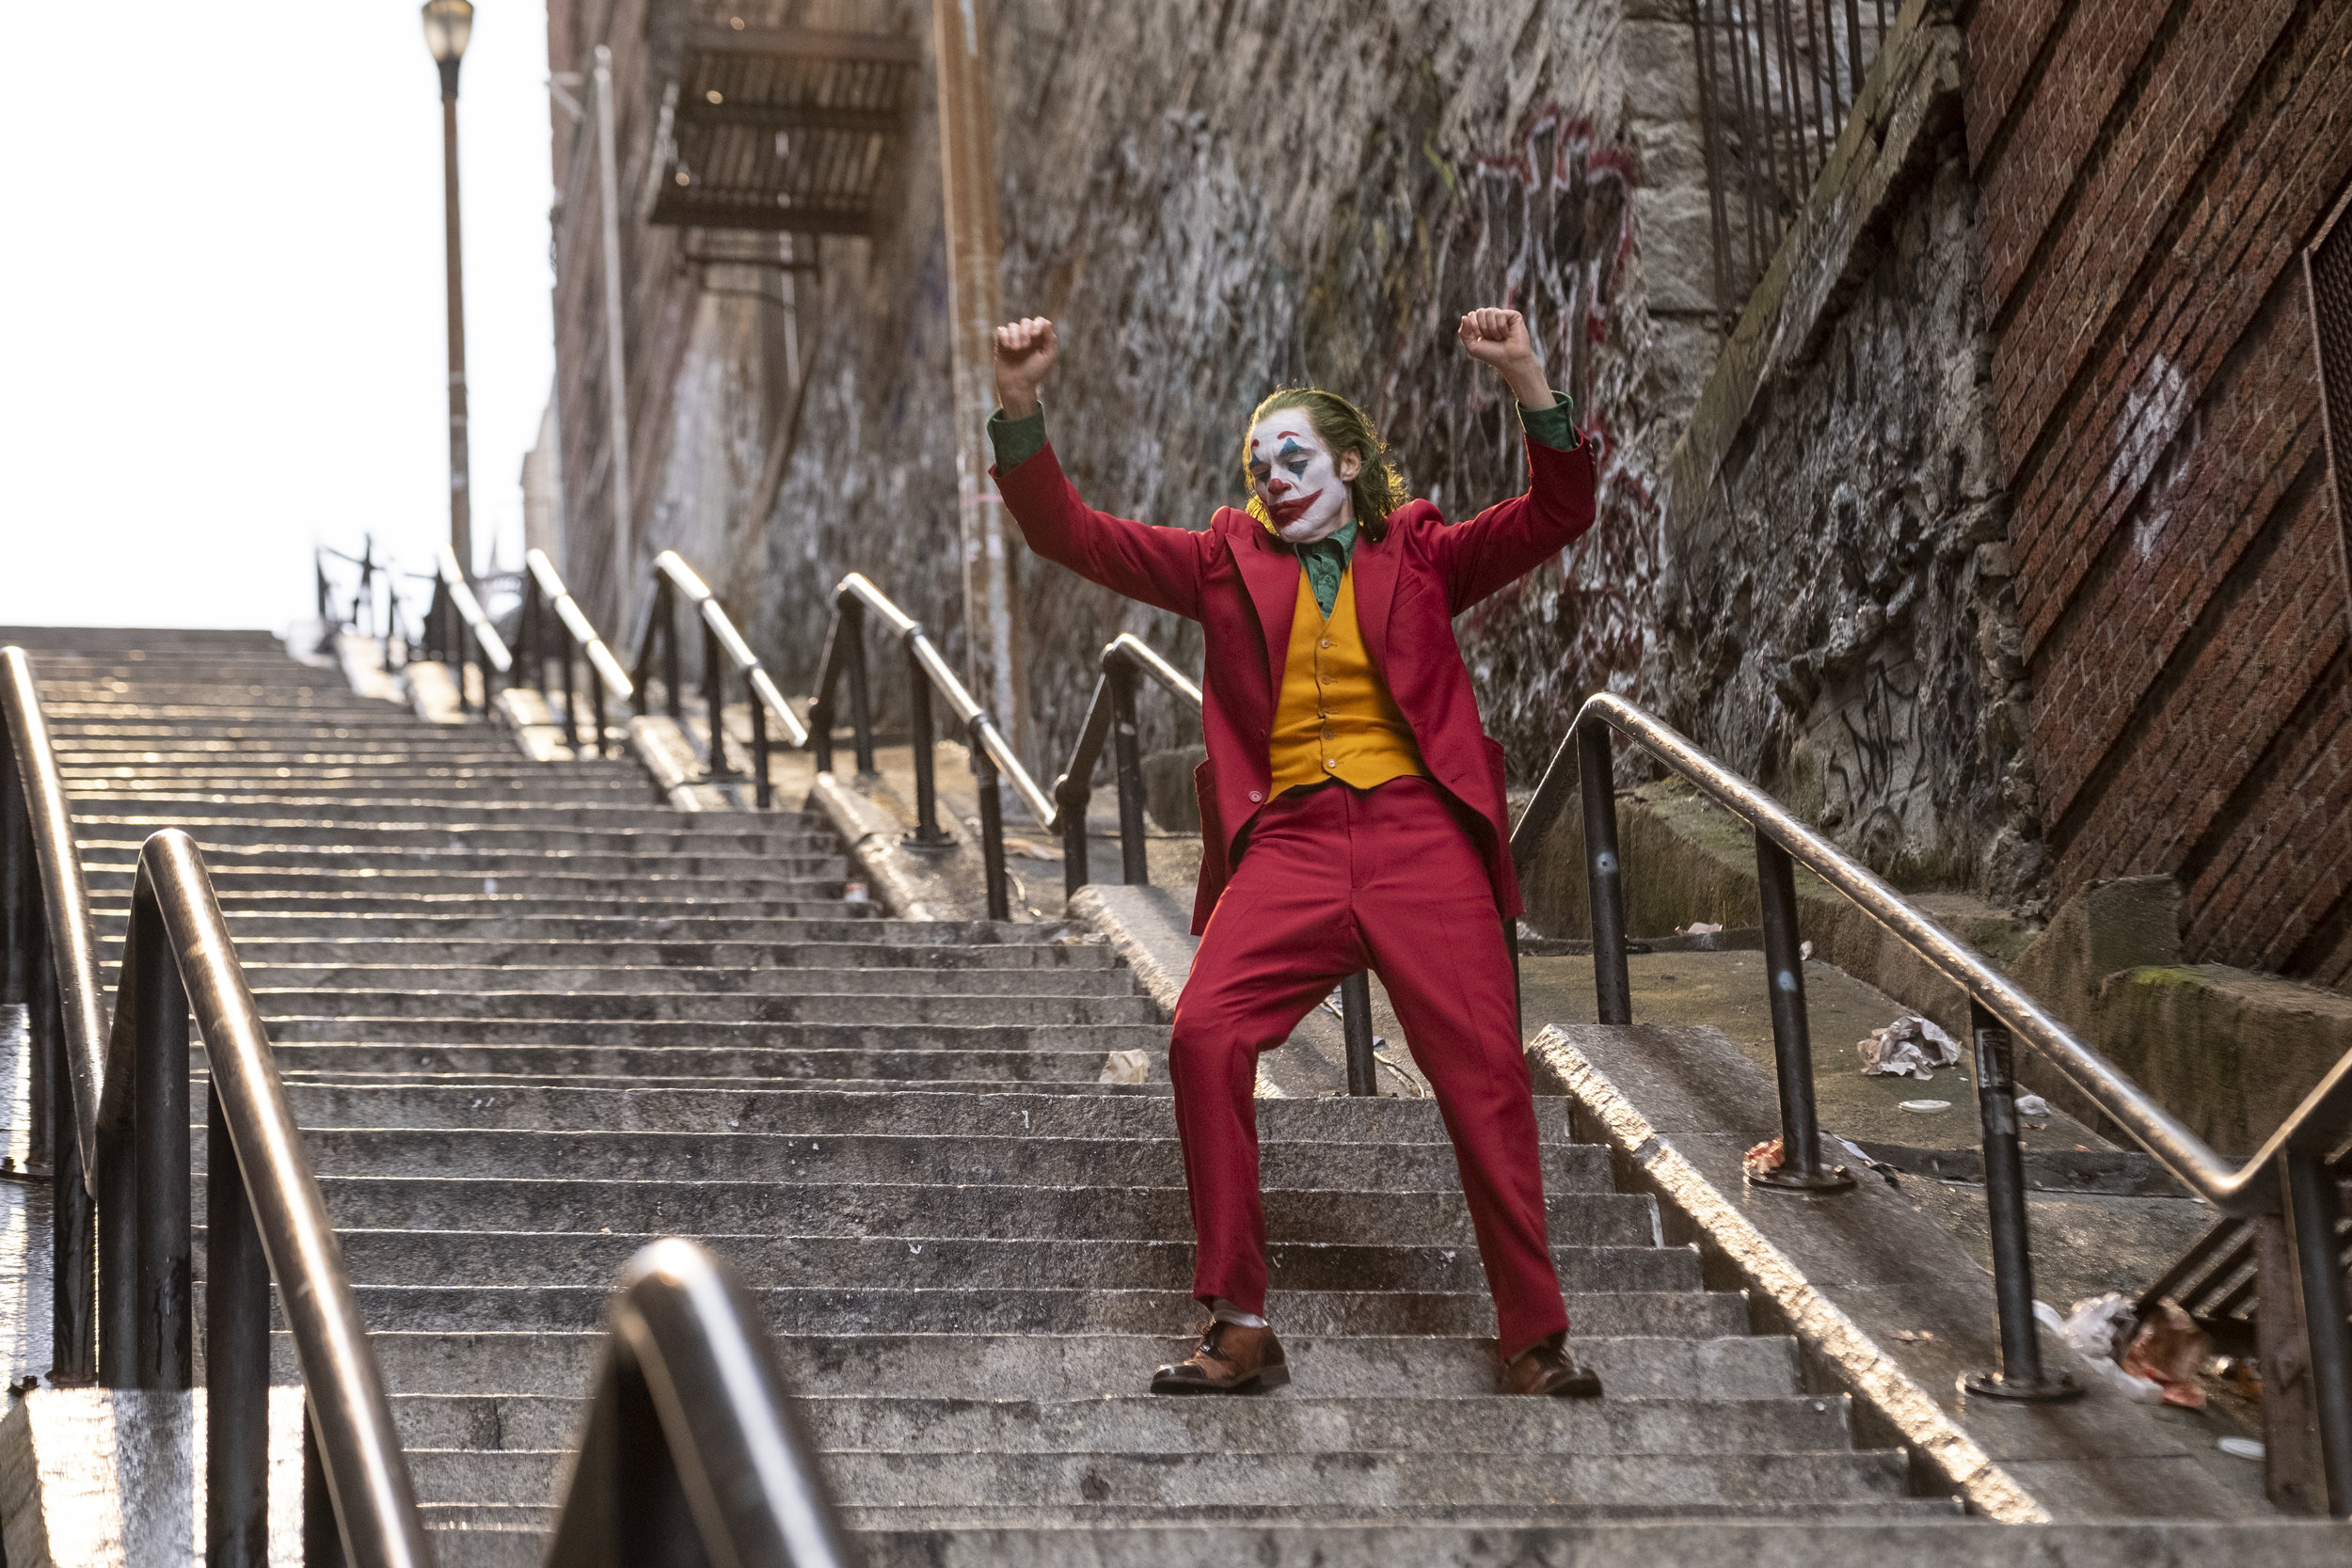 """Joaquin Phoenix plays Arthur Fleck, who transforms into Gotham City's iconic criminal, in """"Joker."""" (Photo by Niko Tavernise, courtesy of Warner Bros. Pictures.)"""